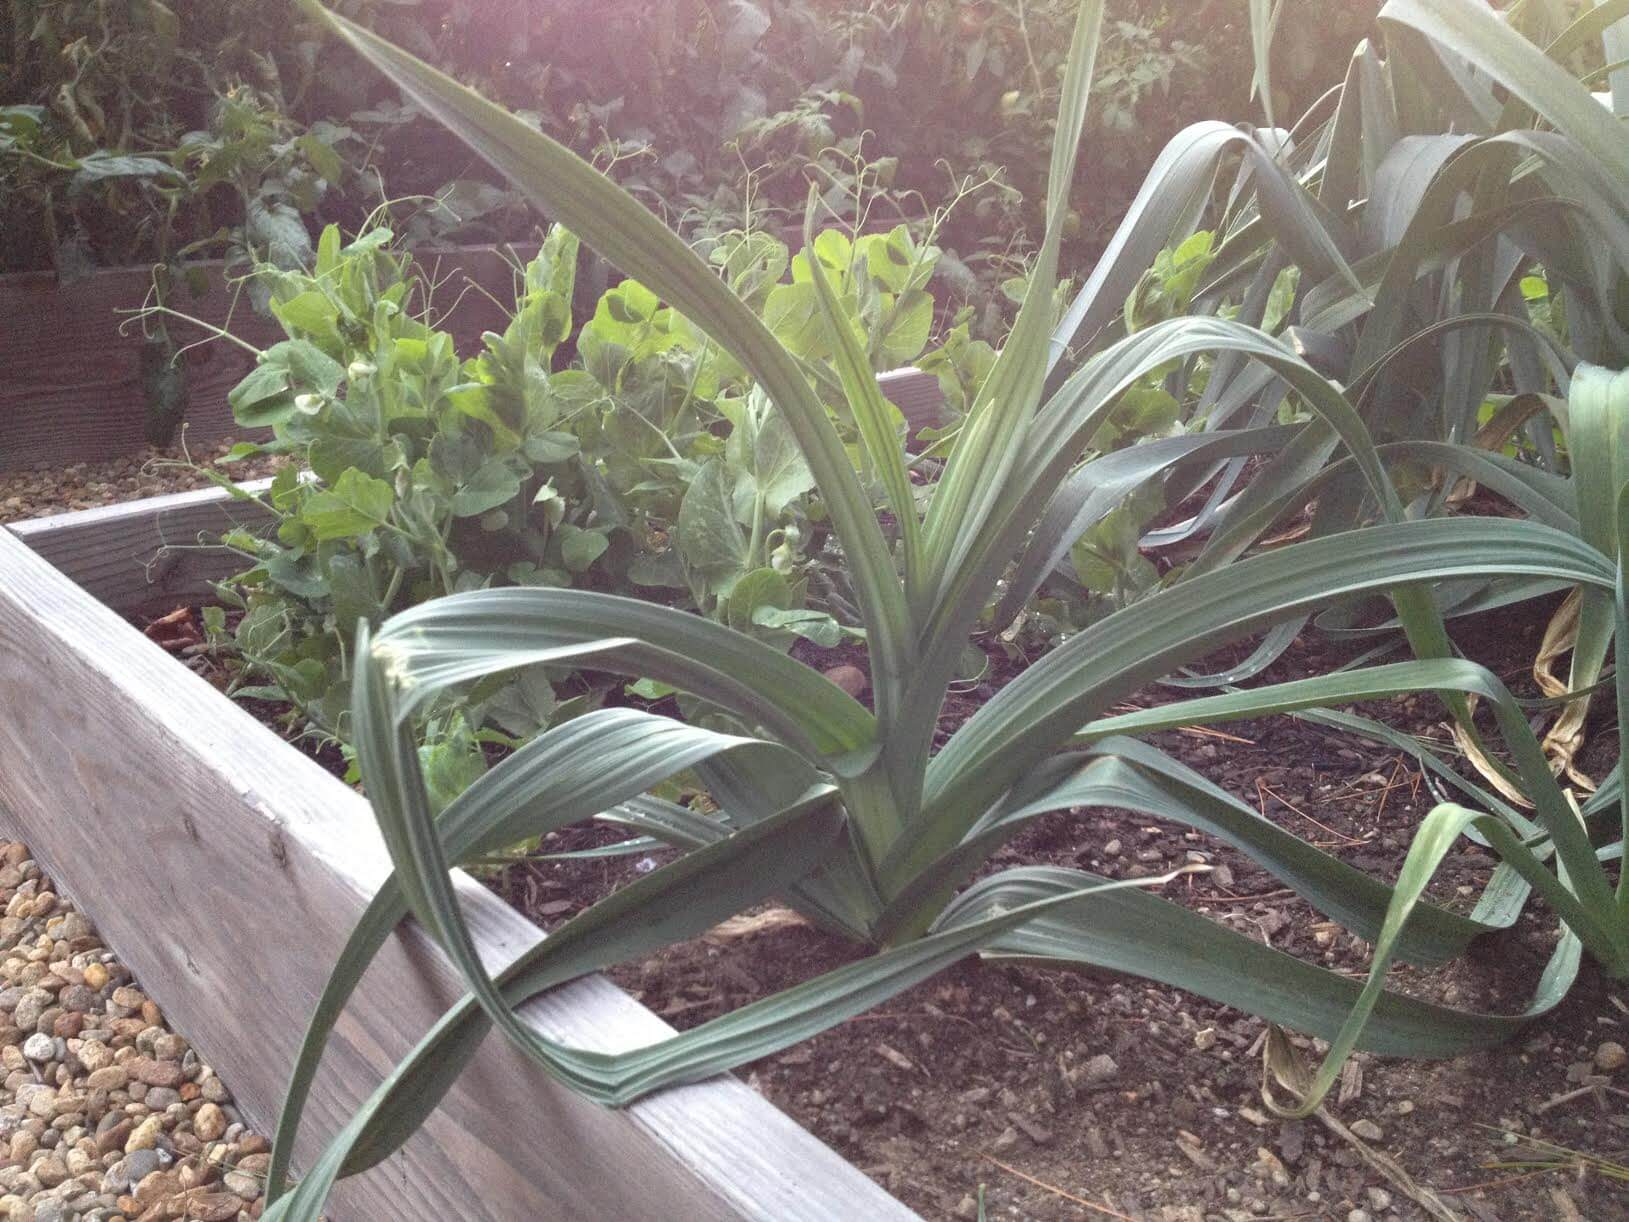 leeks growing in a garden